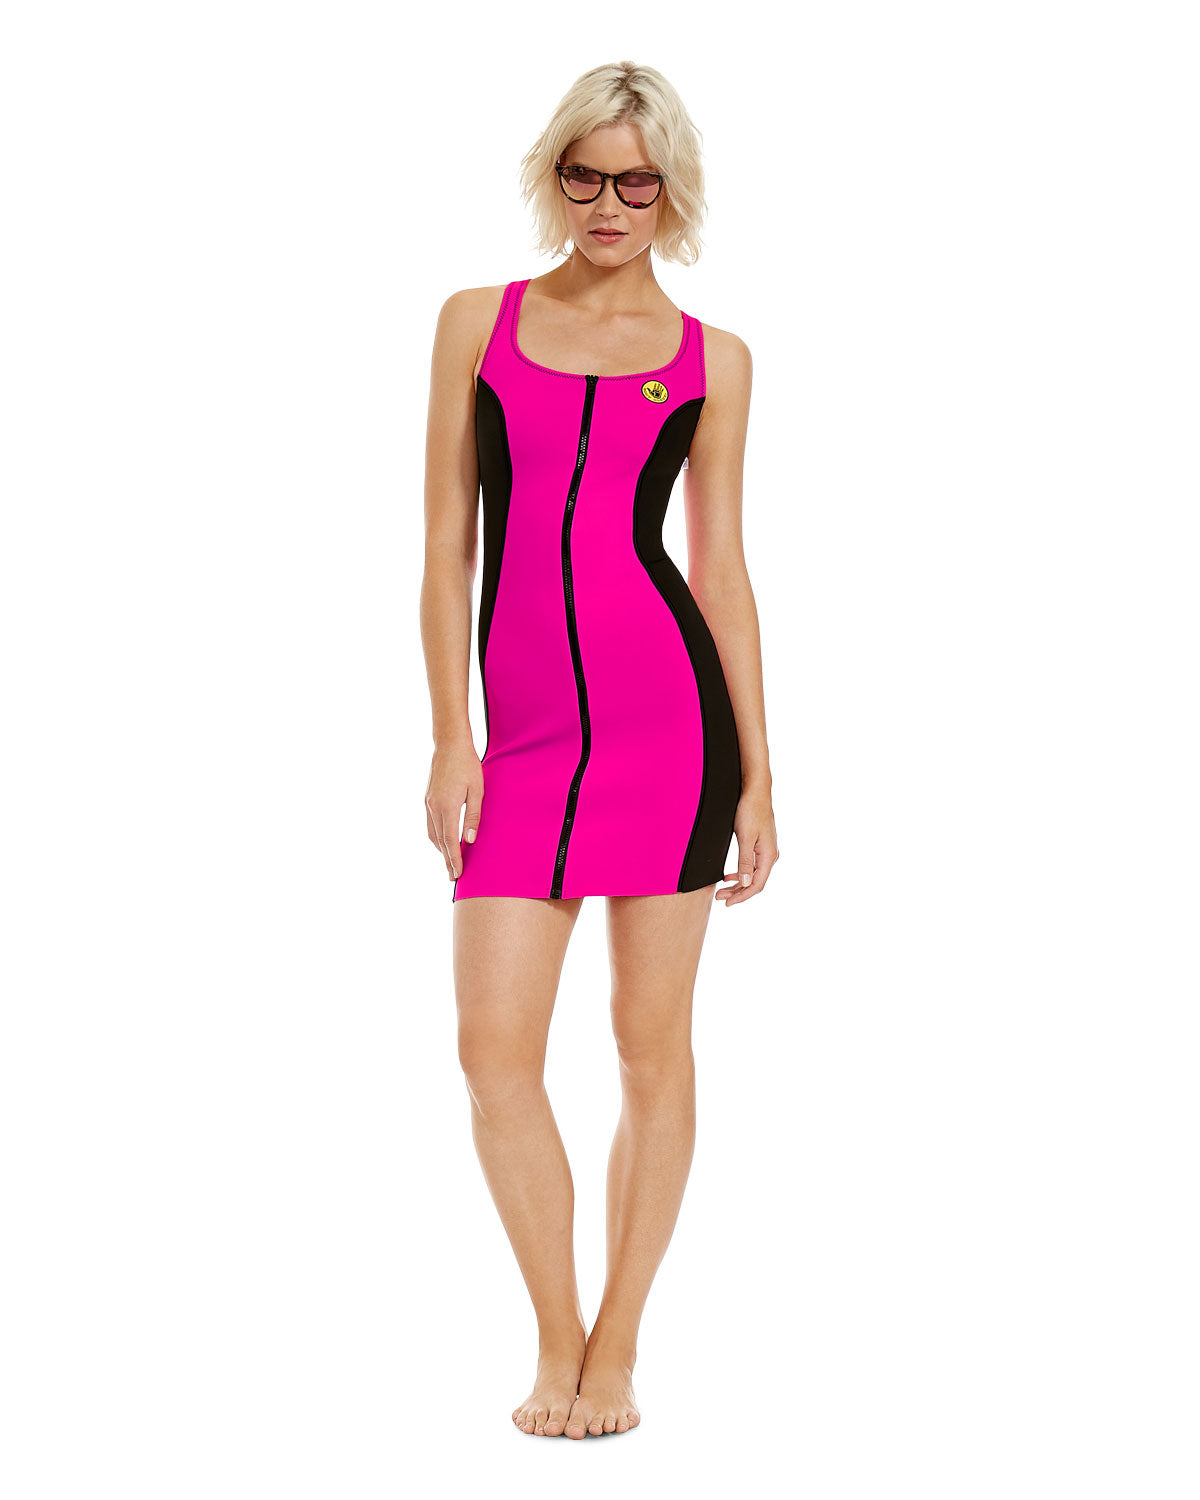 '80s Throwback Simply Irresistible Dress - Flamingo Pink